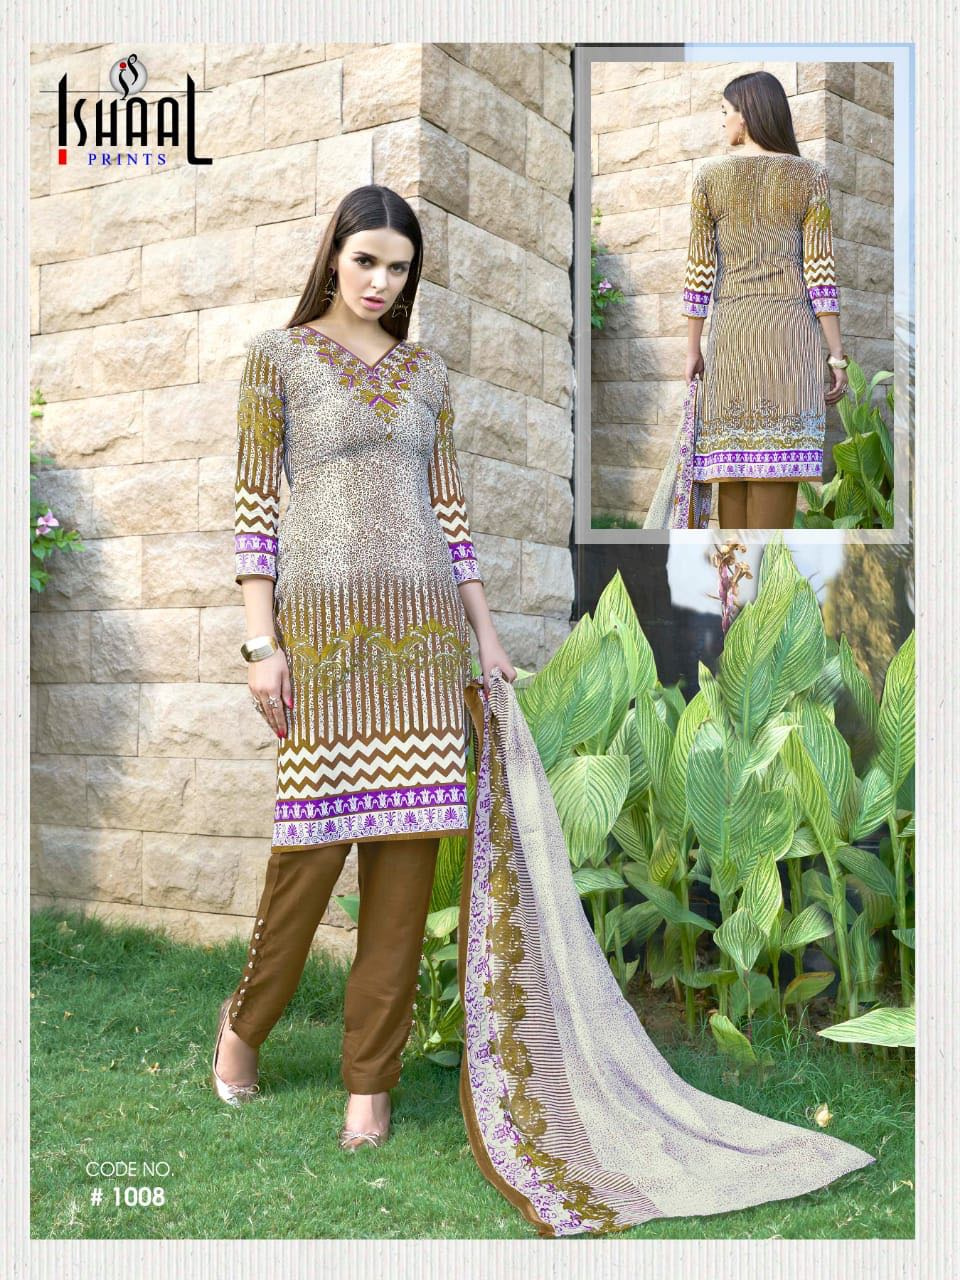 Ishaal prints gulmohar vol 3 printed Pakistani suit catalogue at best price surat